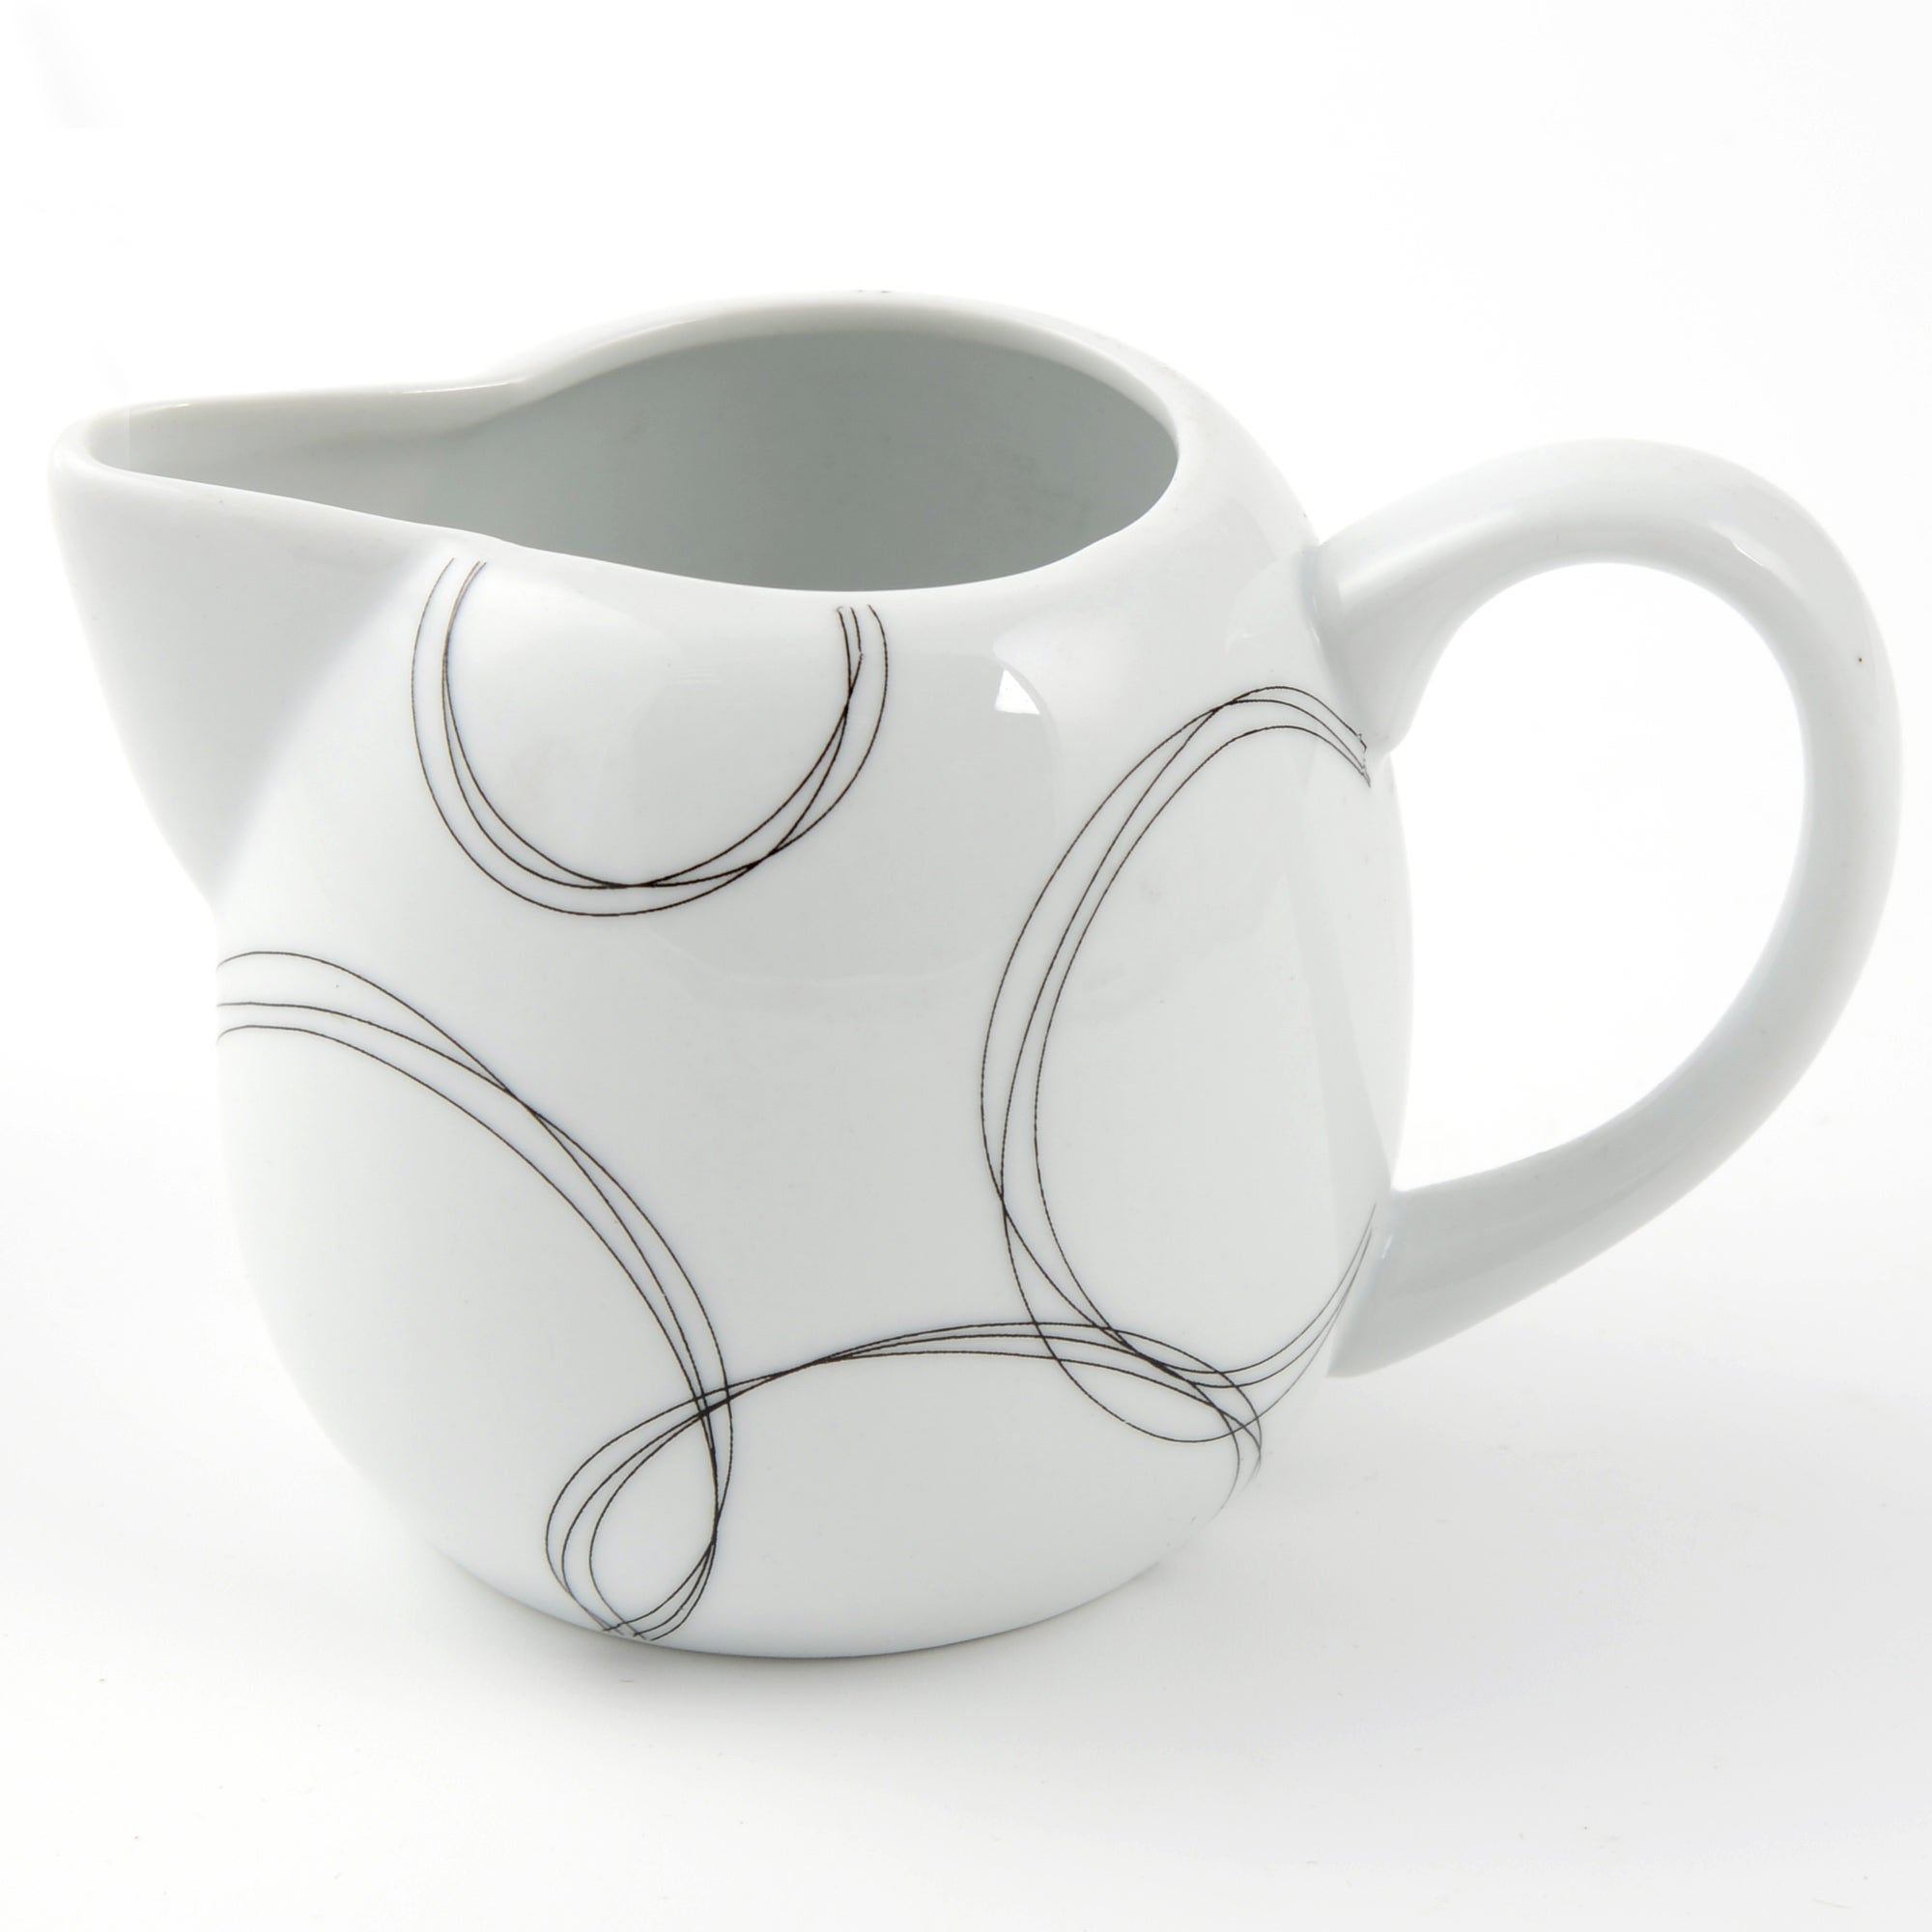 Ellipse Collection Creamer